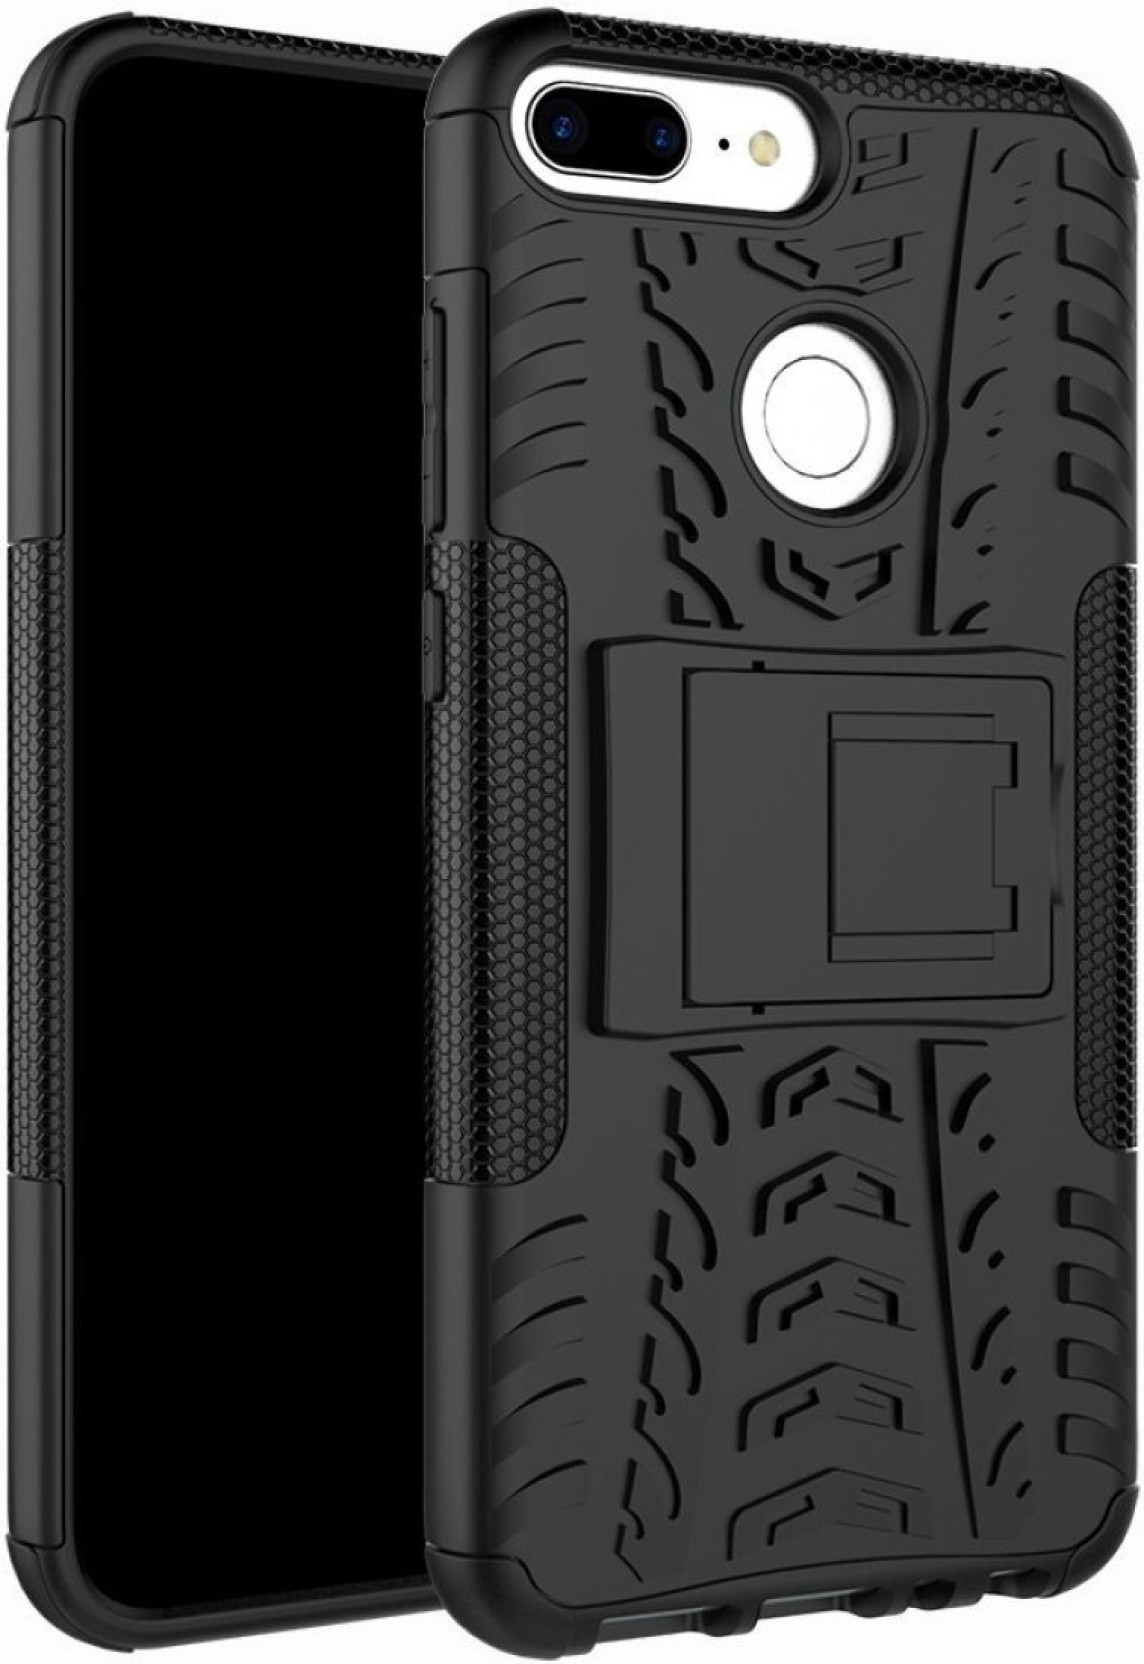 newest ecdd0 799a1 XOLDA Back Replacement Cover for LENOVO K5 PLAY - XOLDA : Flipkart.com